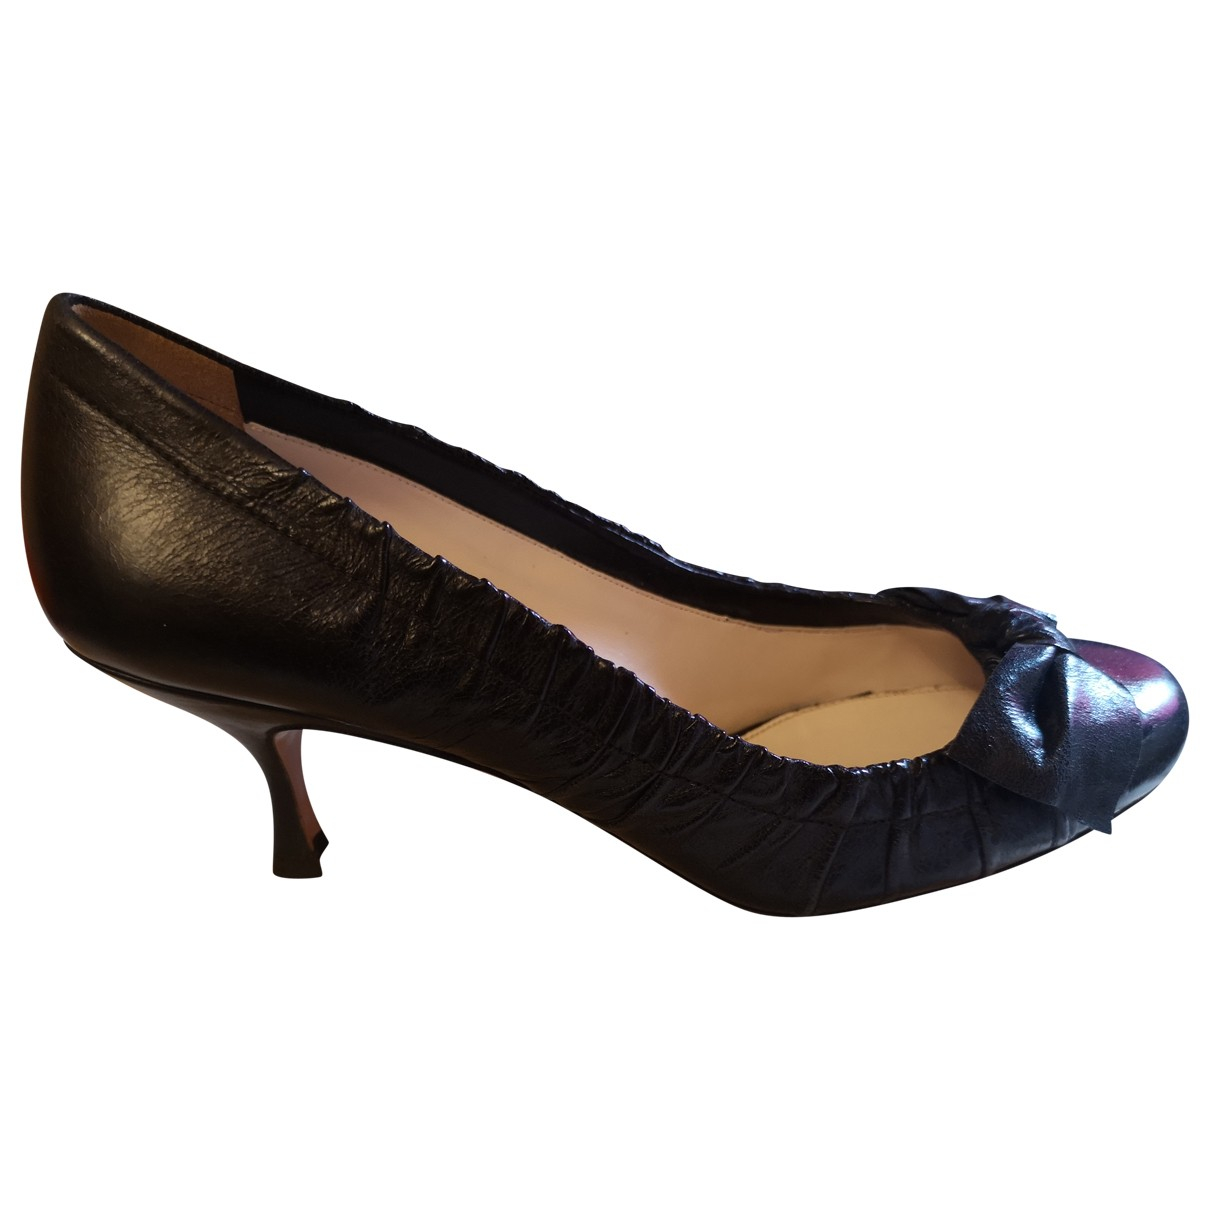 Prada \N Pumps in  Schwarz Leder